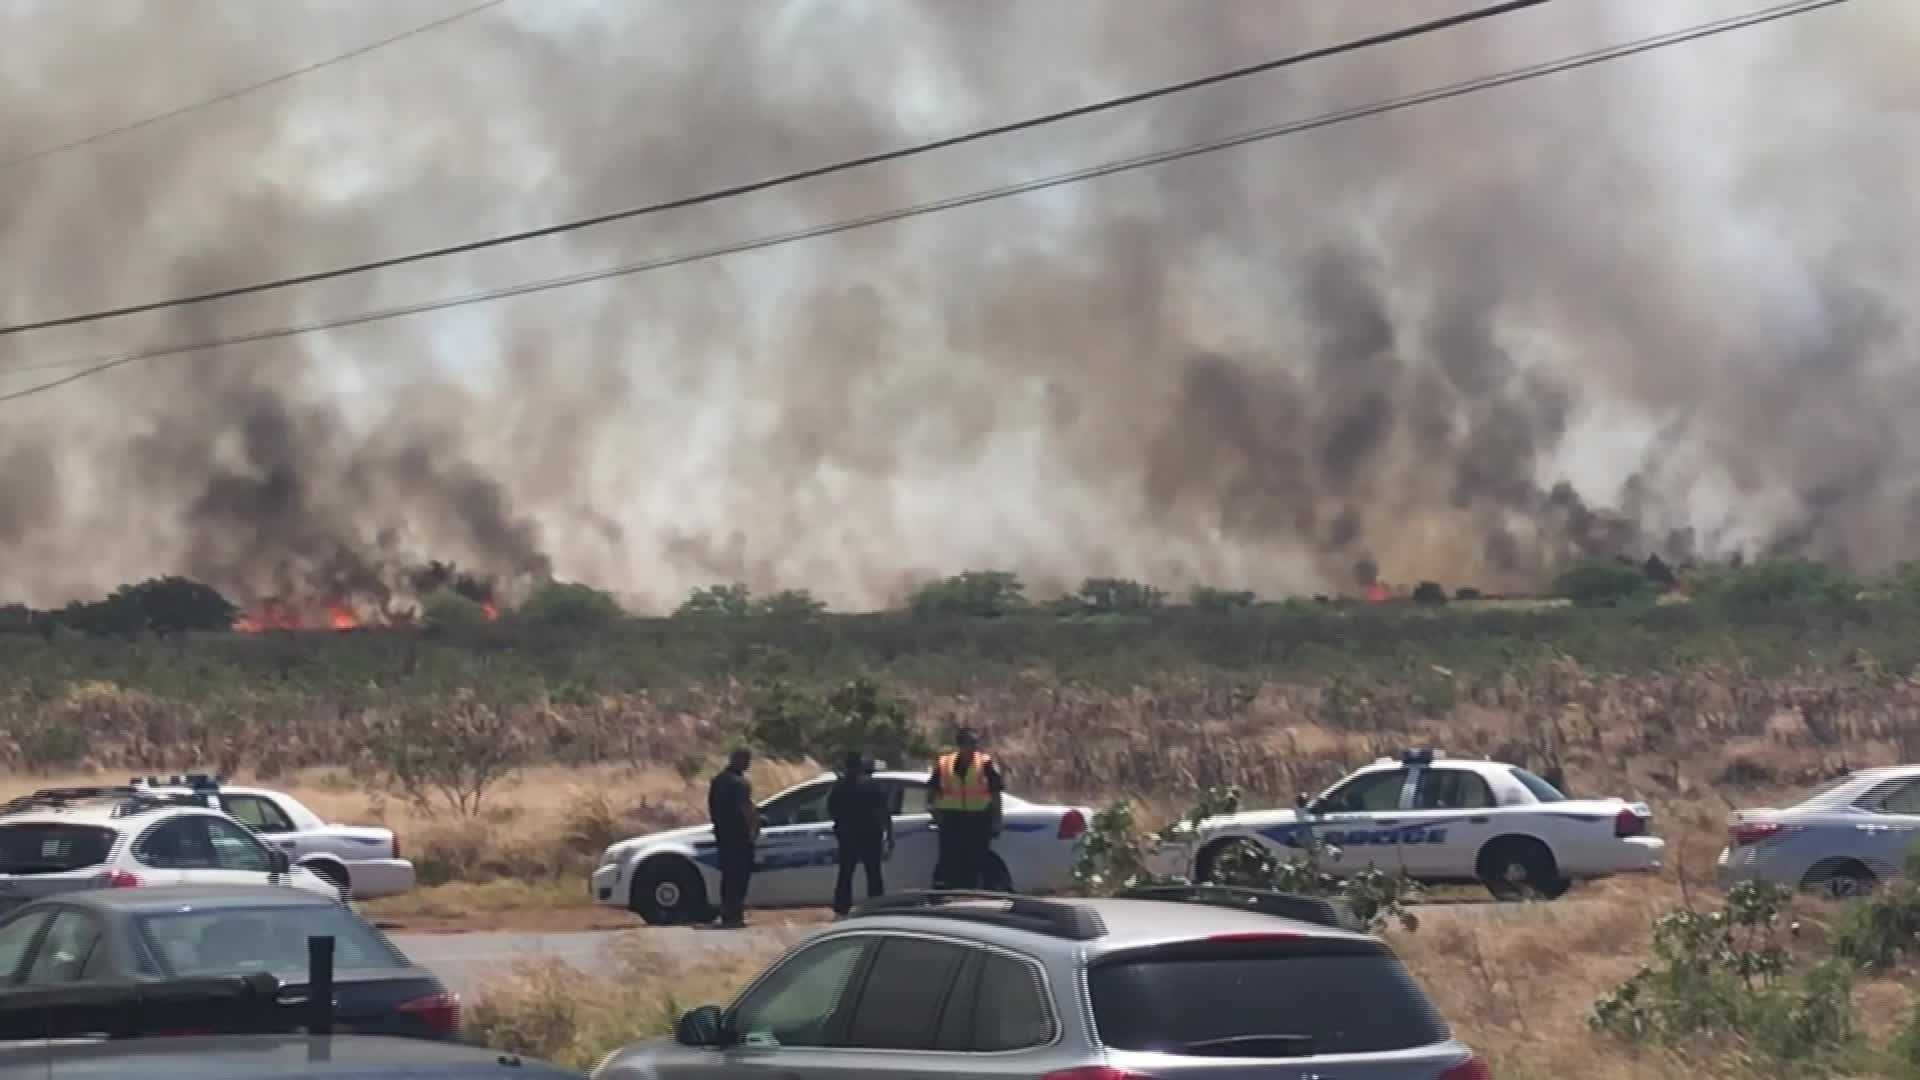 People and animals forced to evacuate as raging fire burns 3,000 acres on Hawaiian island of Maui thumbnail